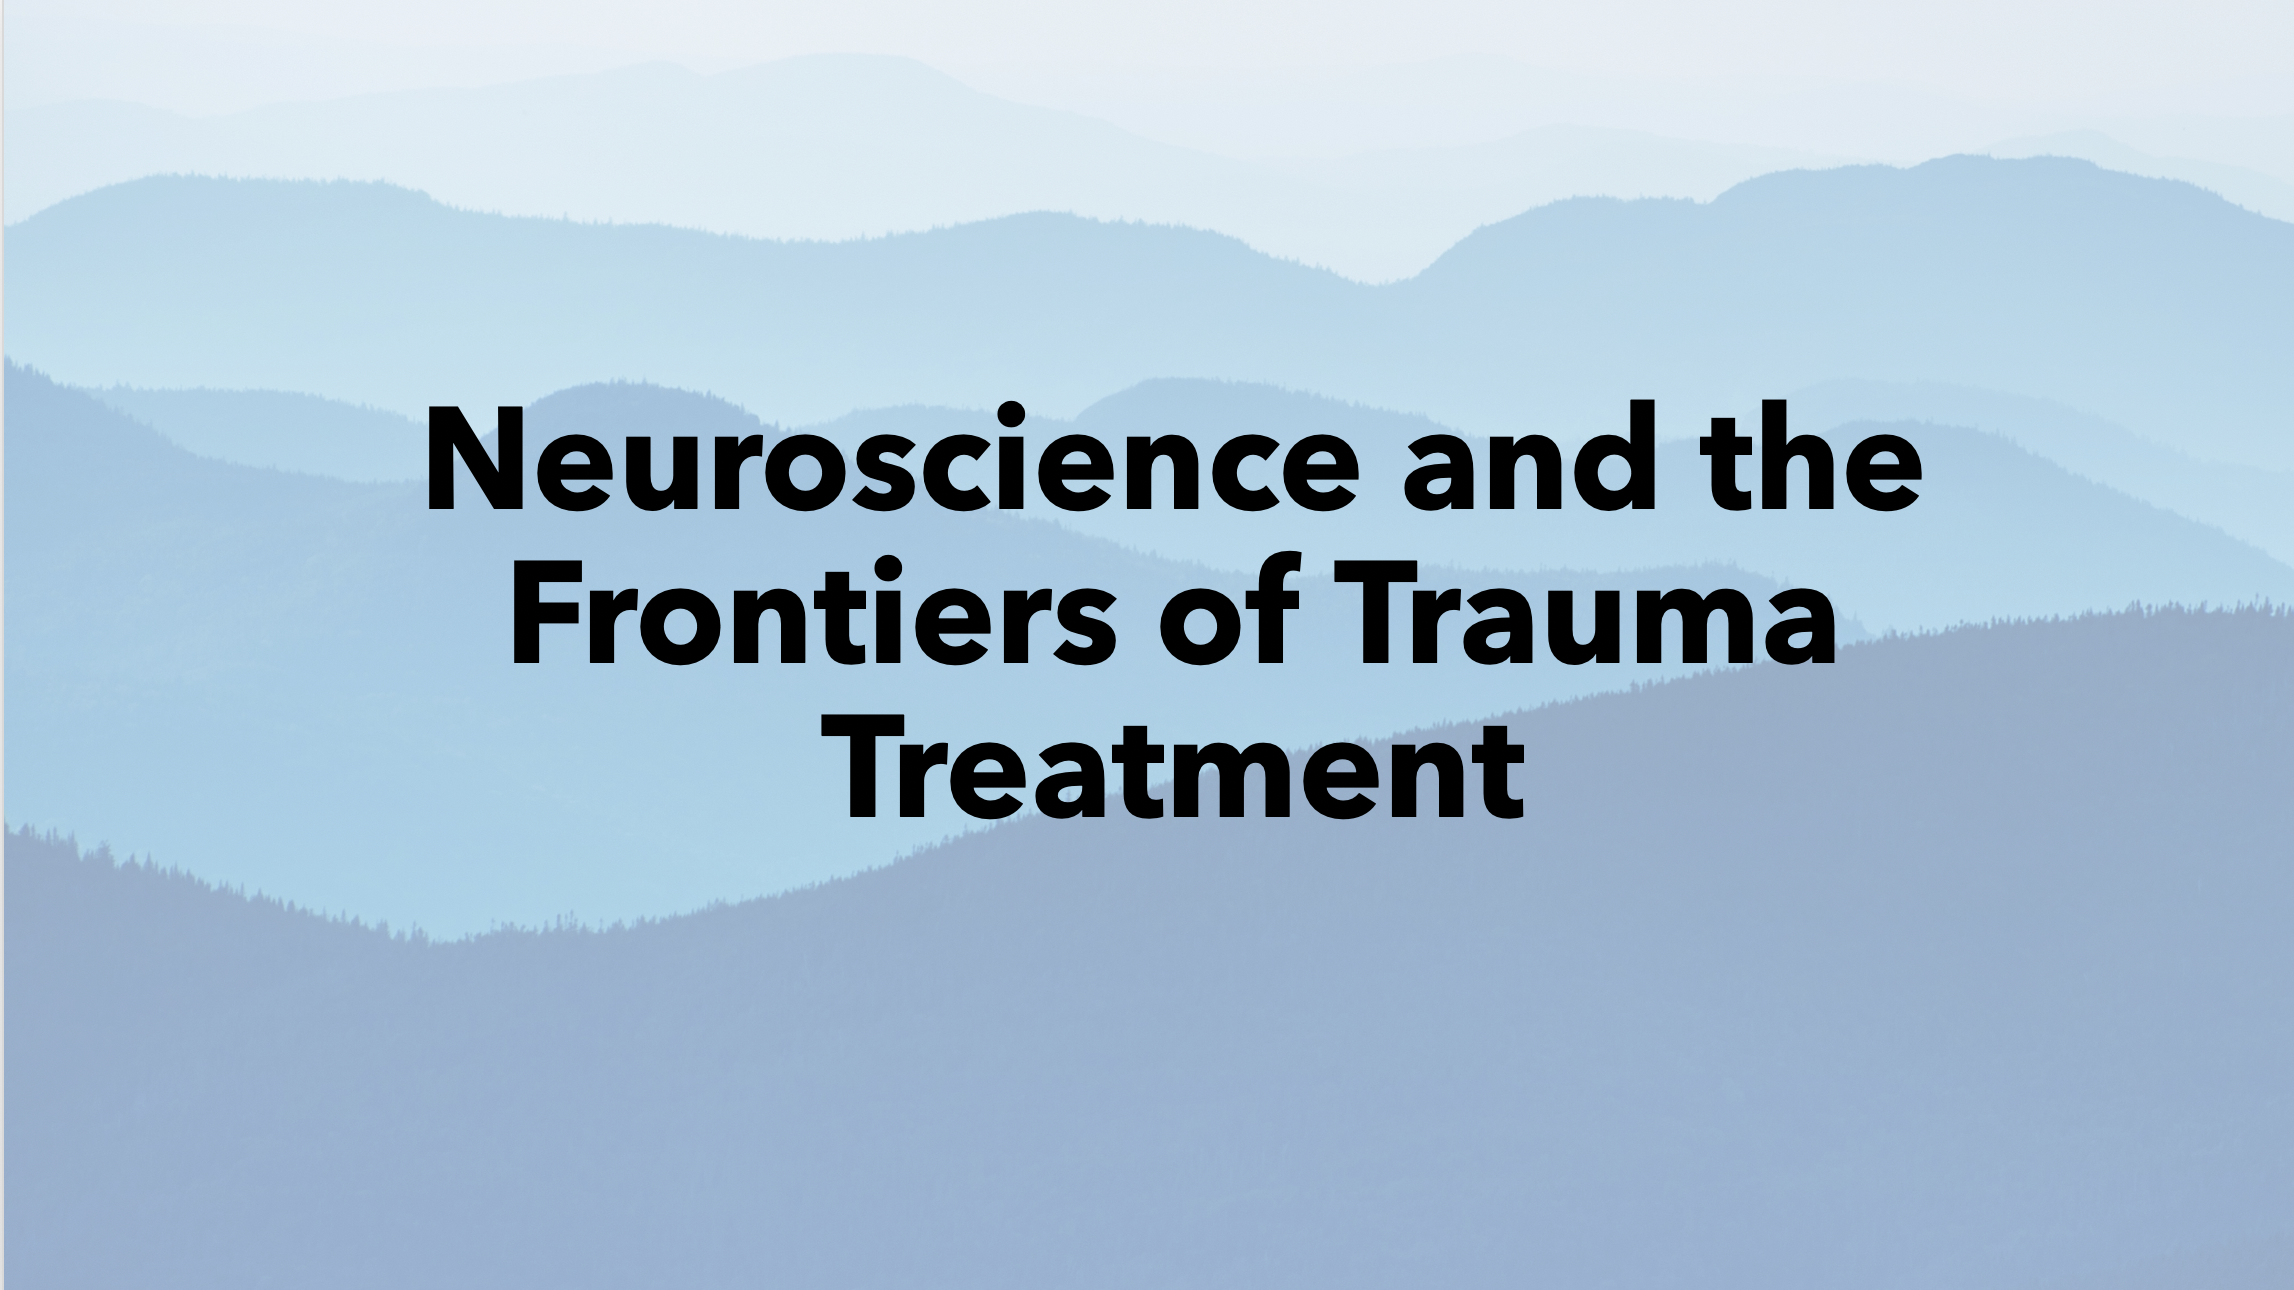 Australia: Neuroscience and the Frontiers of Trauma Treatment